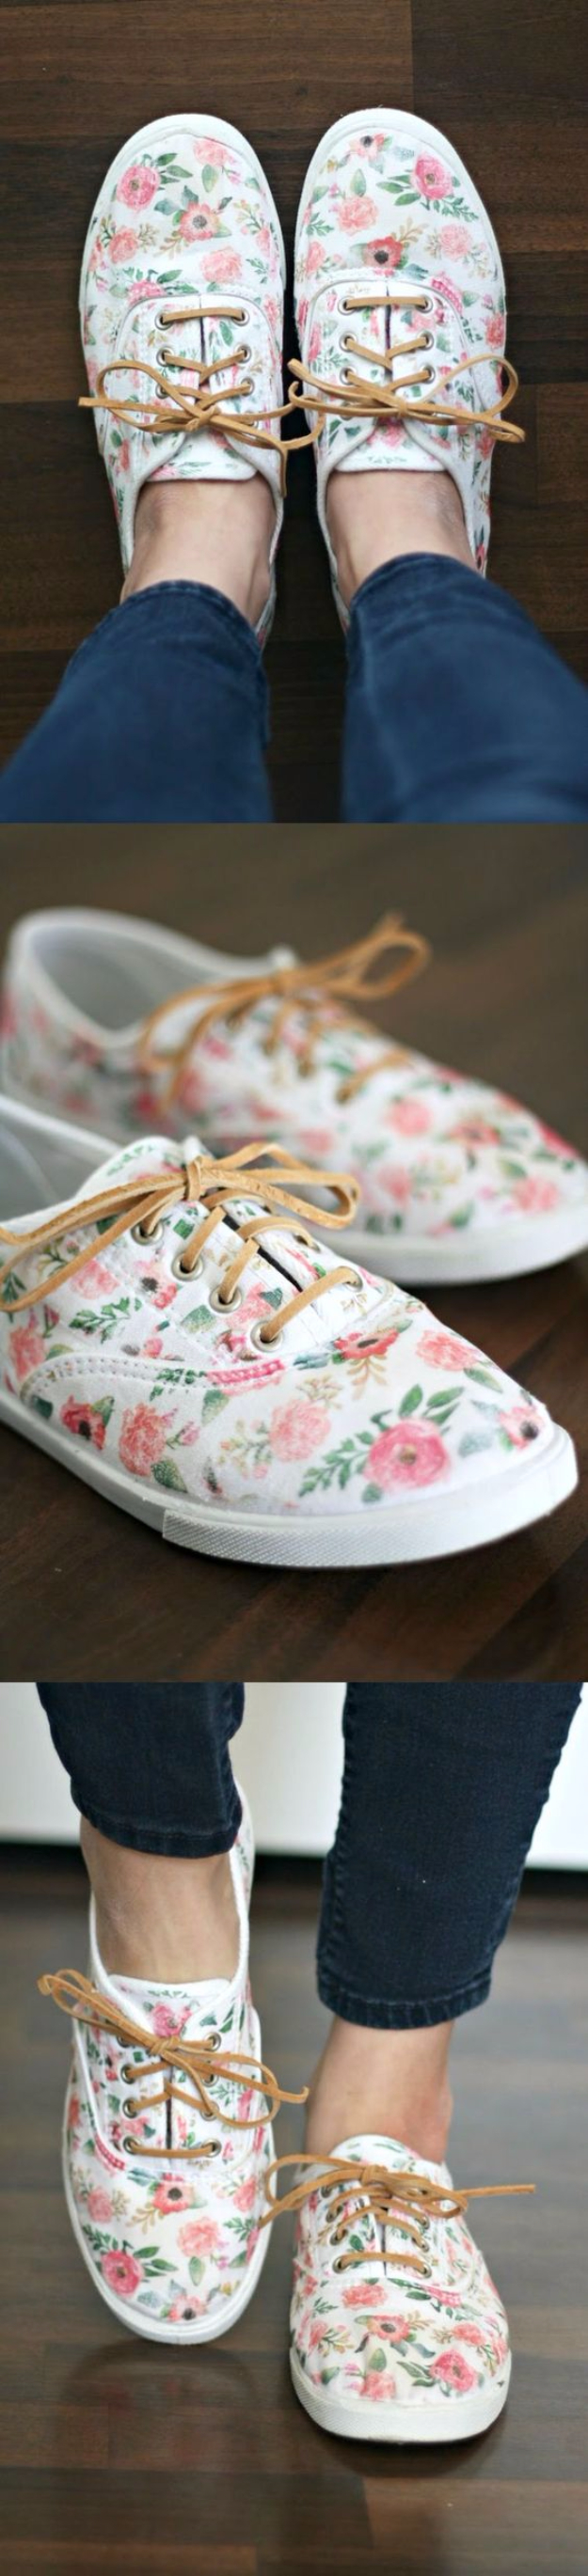 Dollar Store Crafts - Iron-On Floral Patterned DIY Shoes - Best Cheap DIY Dollar Store Craft Ideas for Kids, Teen, Adults, Gifts and For Home #dollarstore #crafts #cheapcrafts #diy